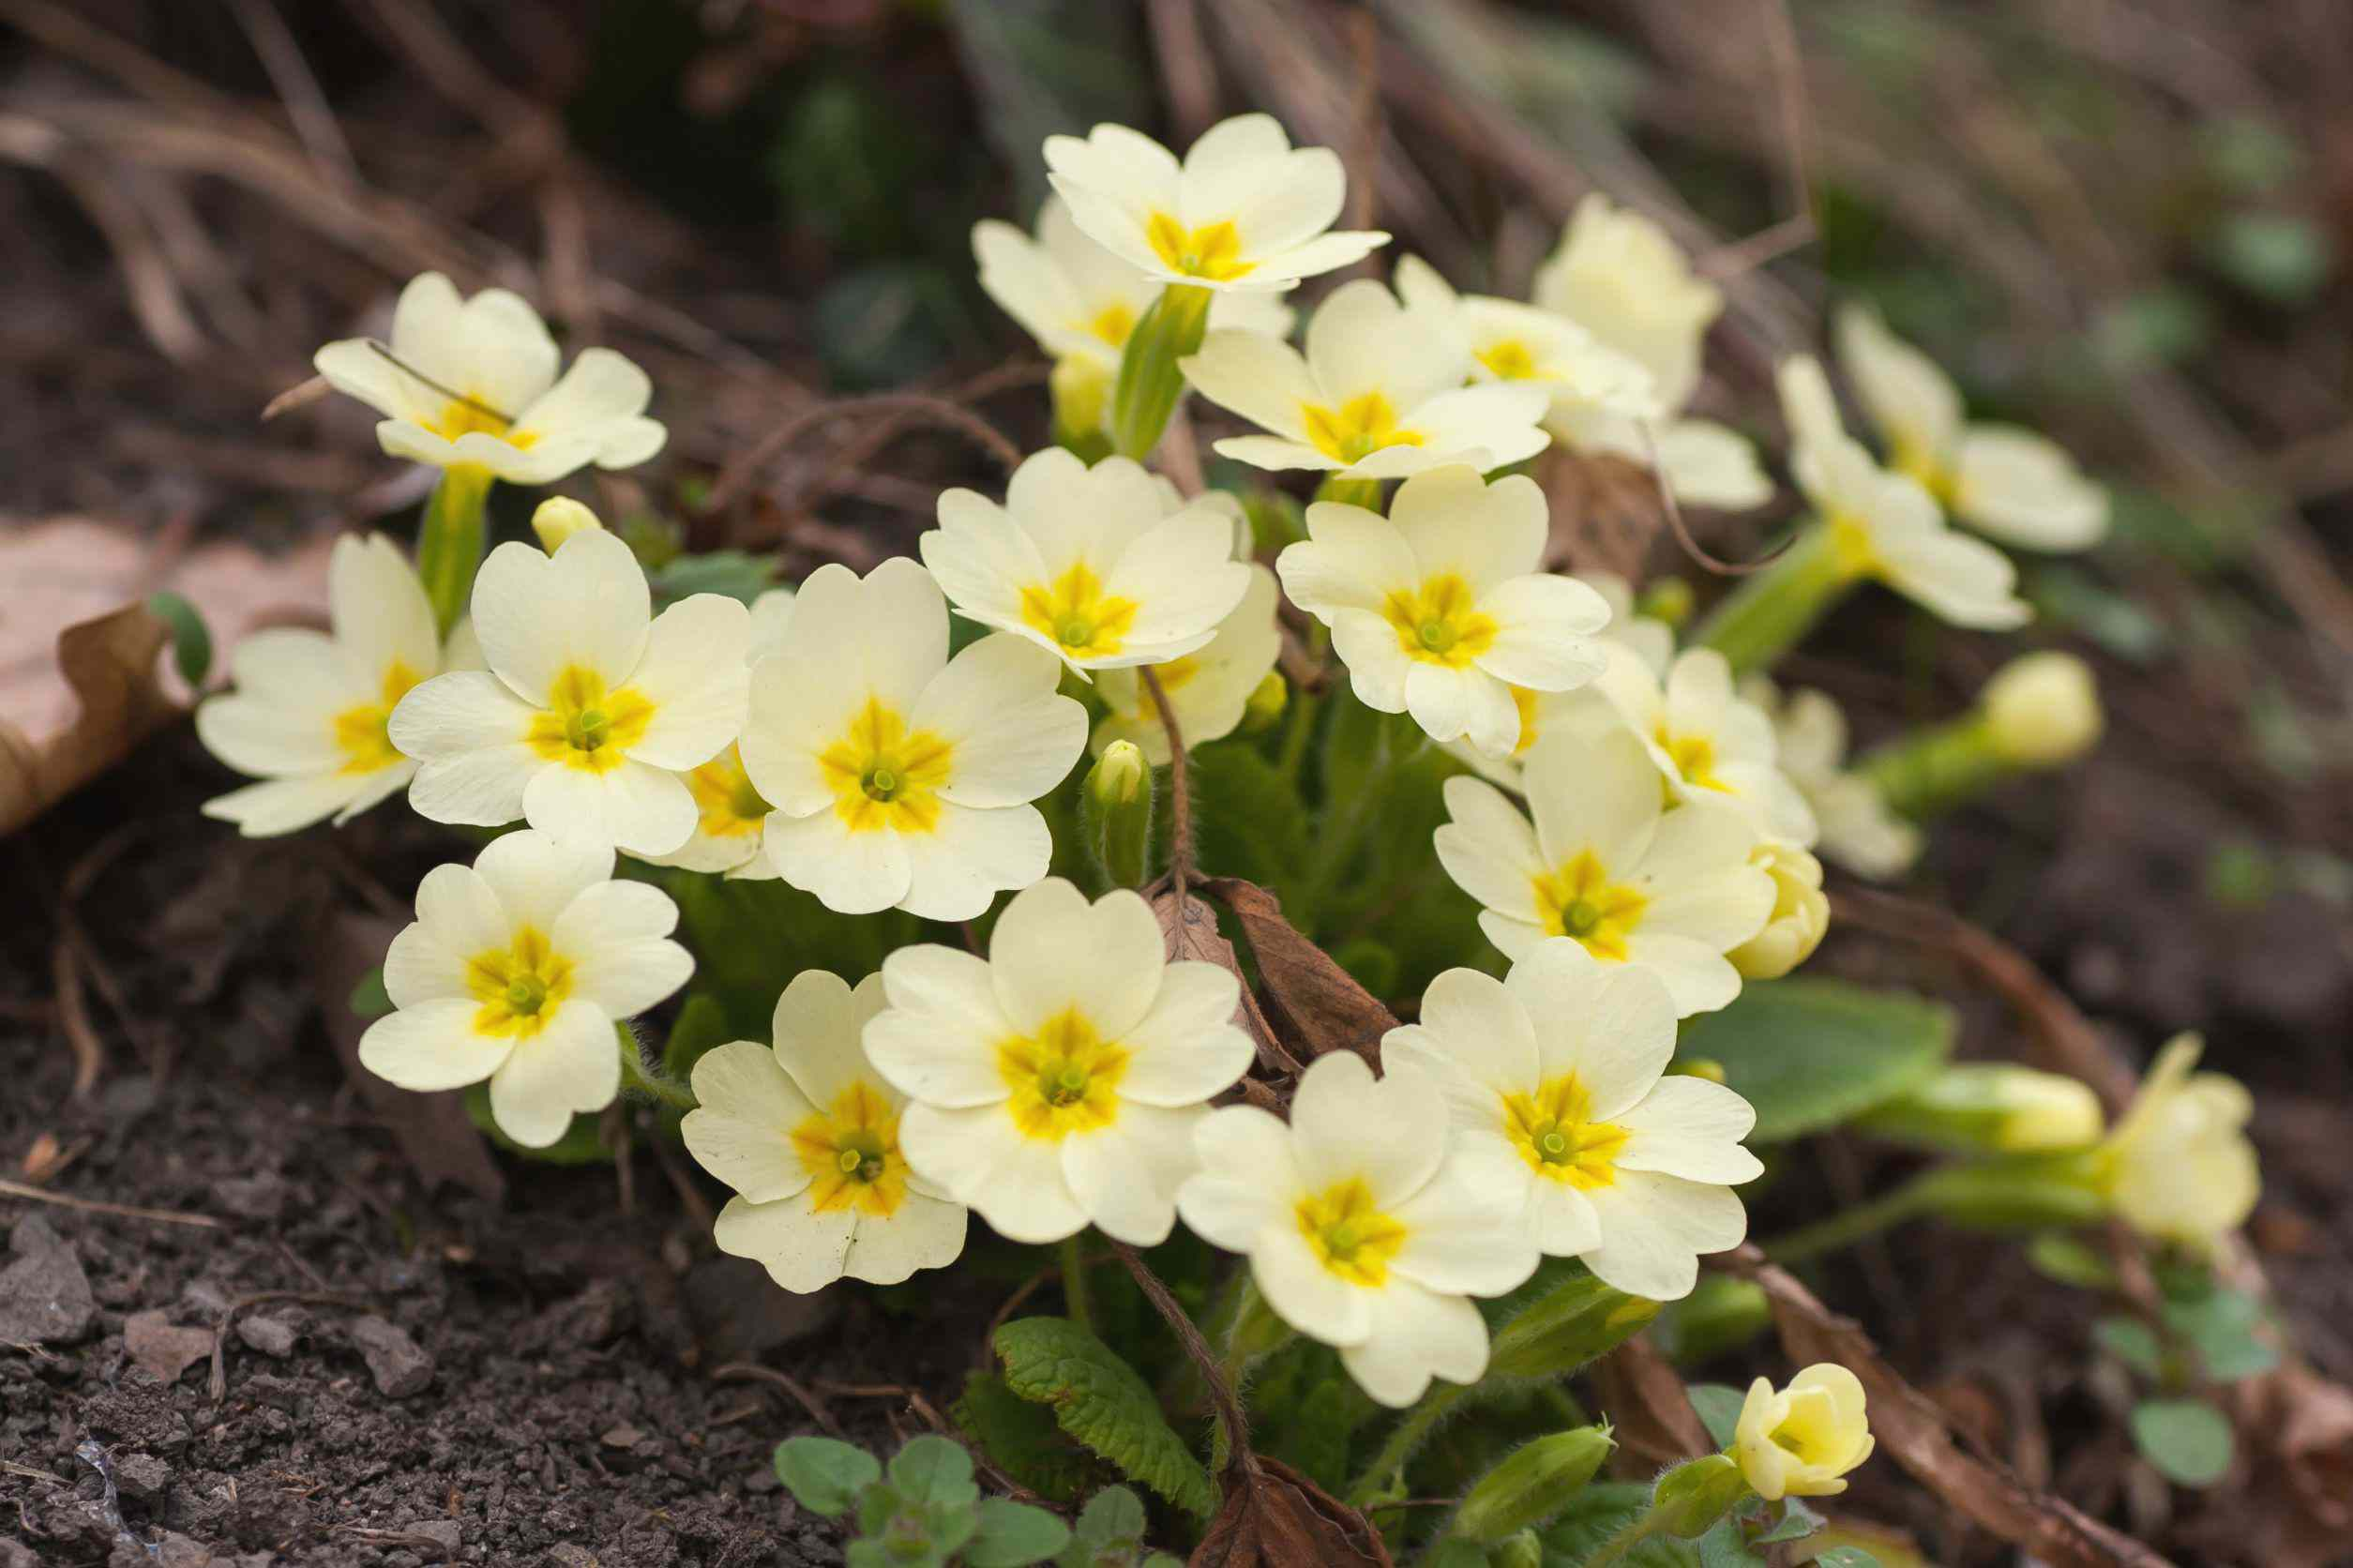 Primrose plant with cream-colored and yellow flowers on ground closeup